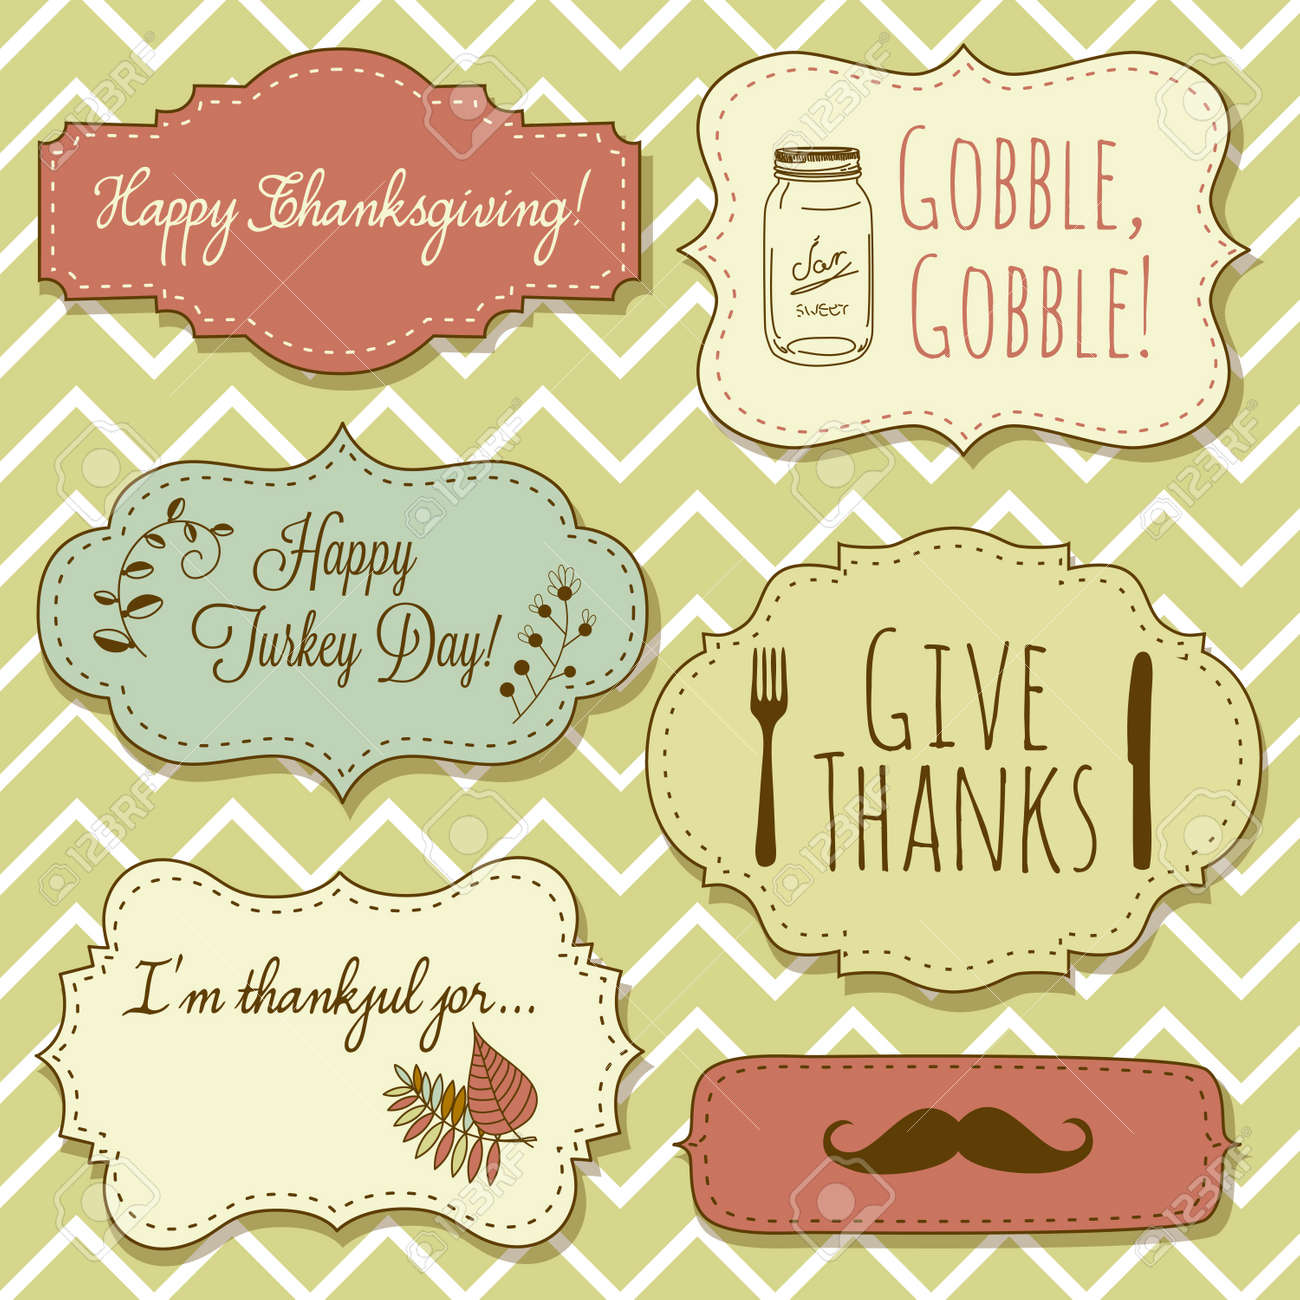 Happy Thanksgiving Frames Royalty Free Cliparts, Vectors, And Stock ...